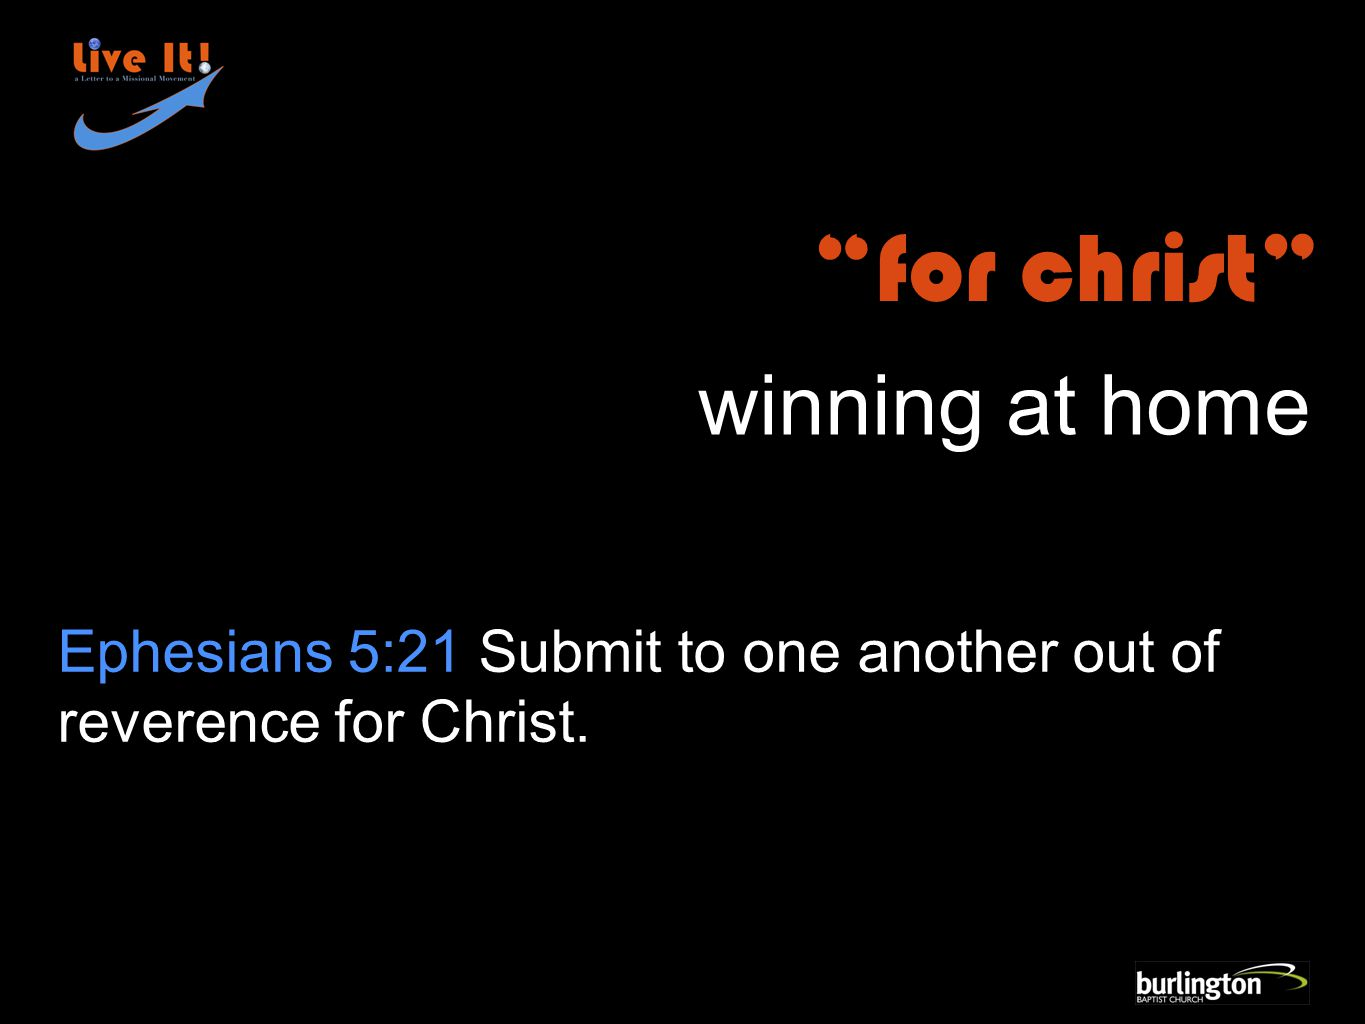 Ephesians 5:21 Submit to one another out of reverence for Christ. for christ winning at home